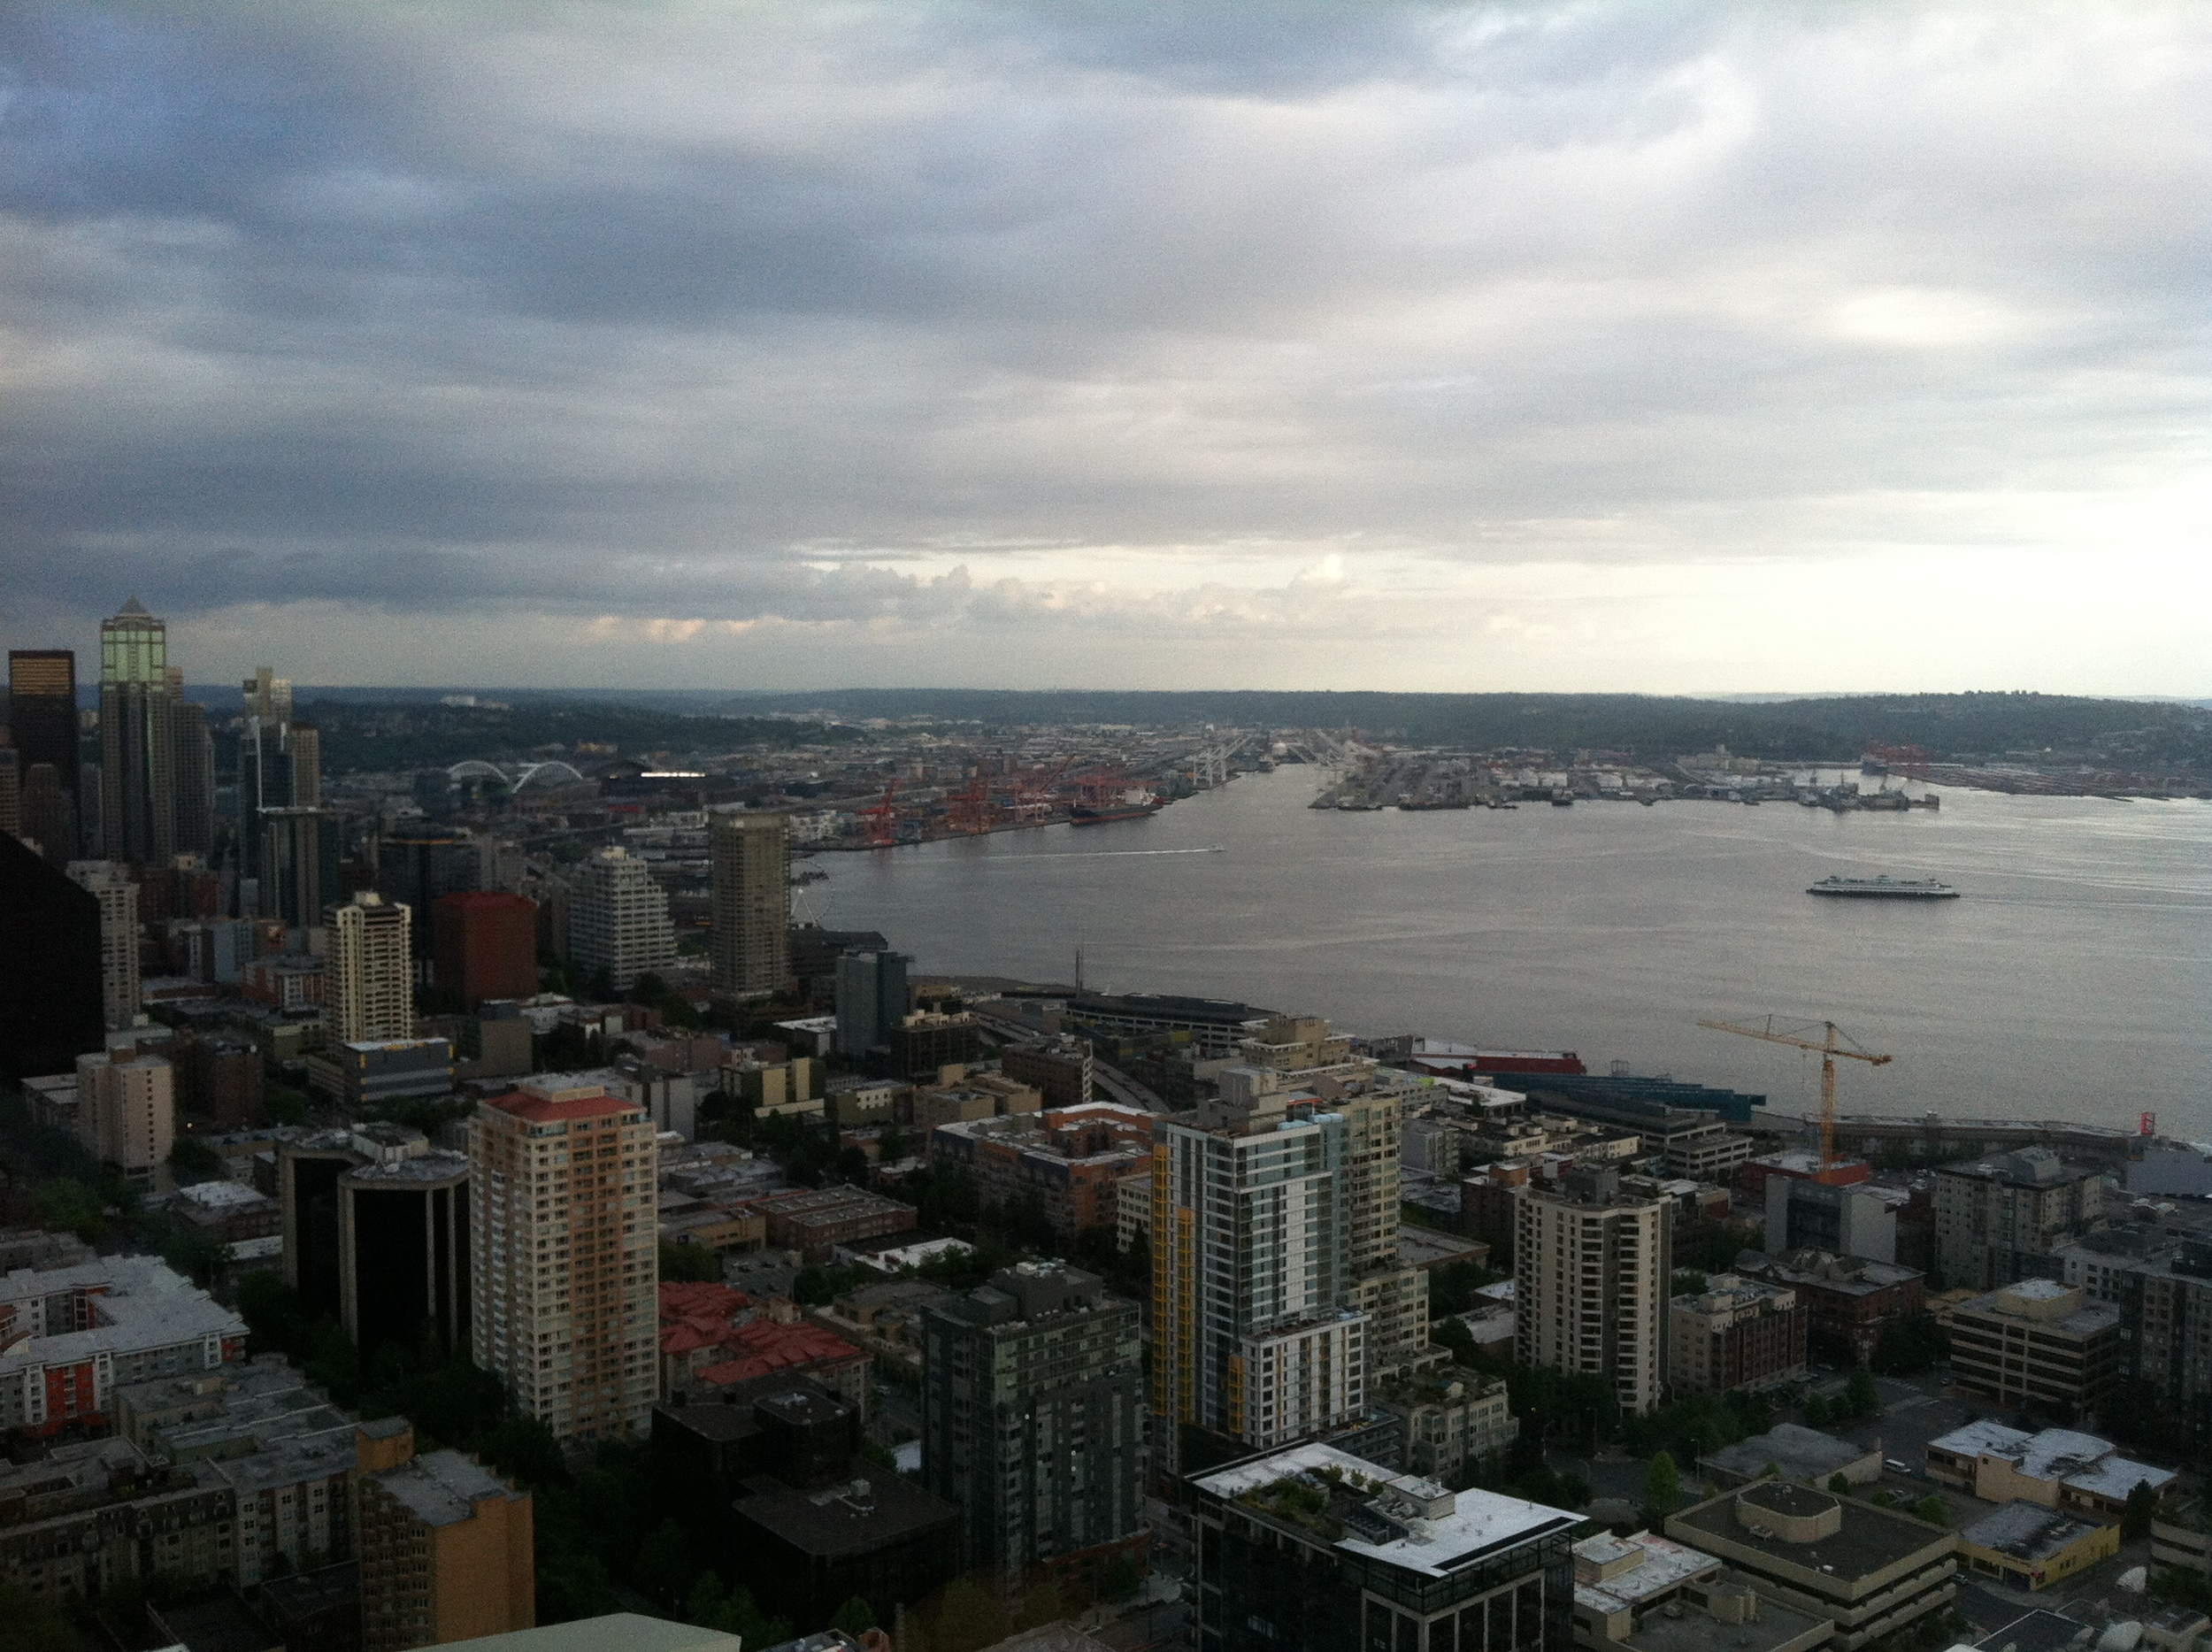 iPhone picture of the view from the Seattle Space Needle